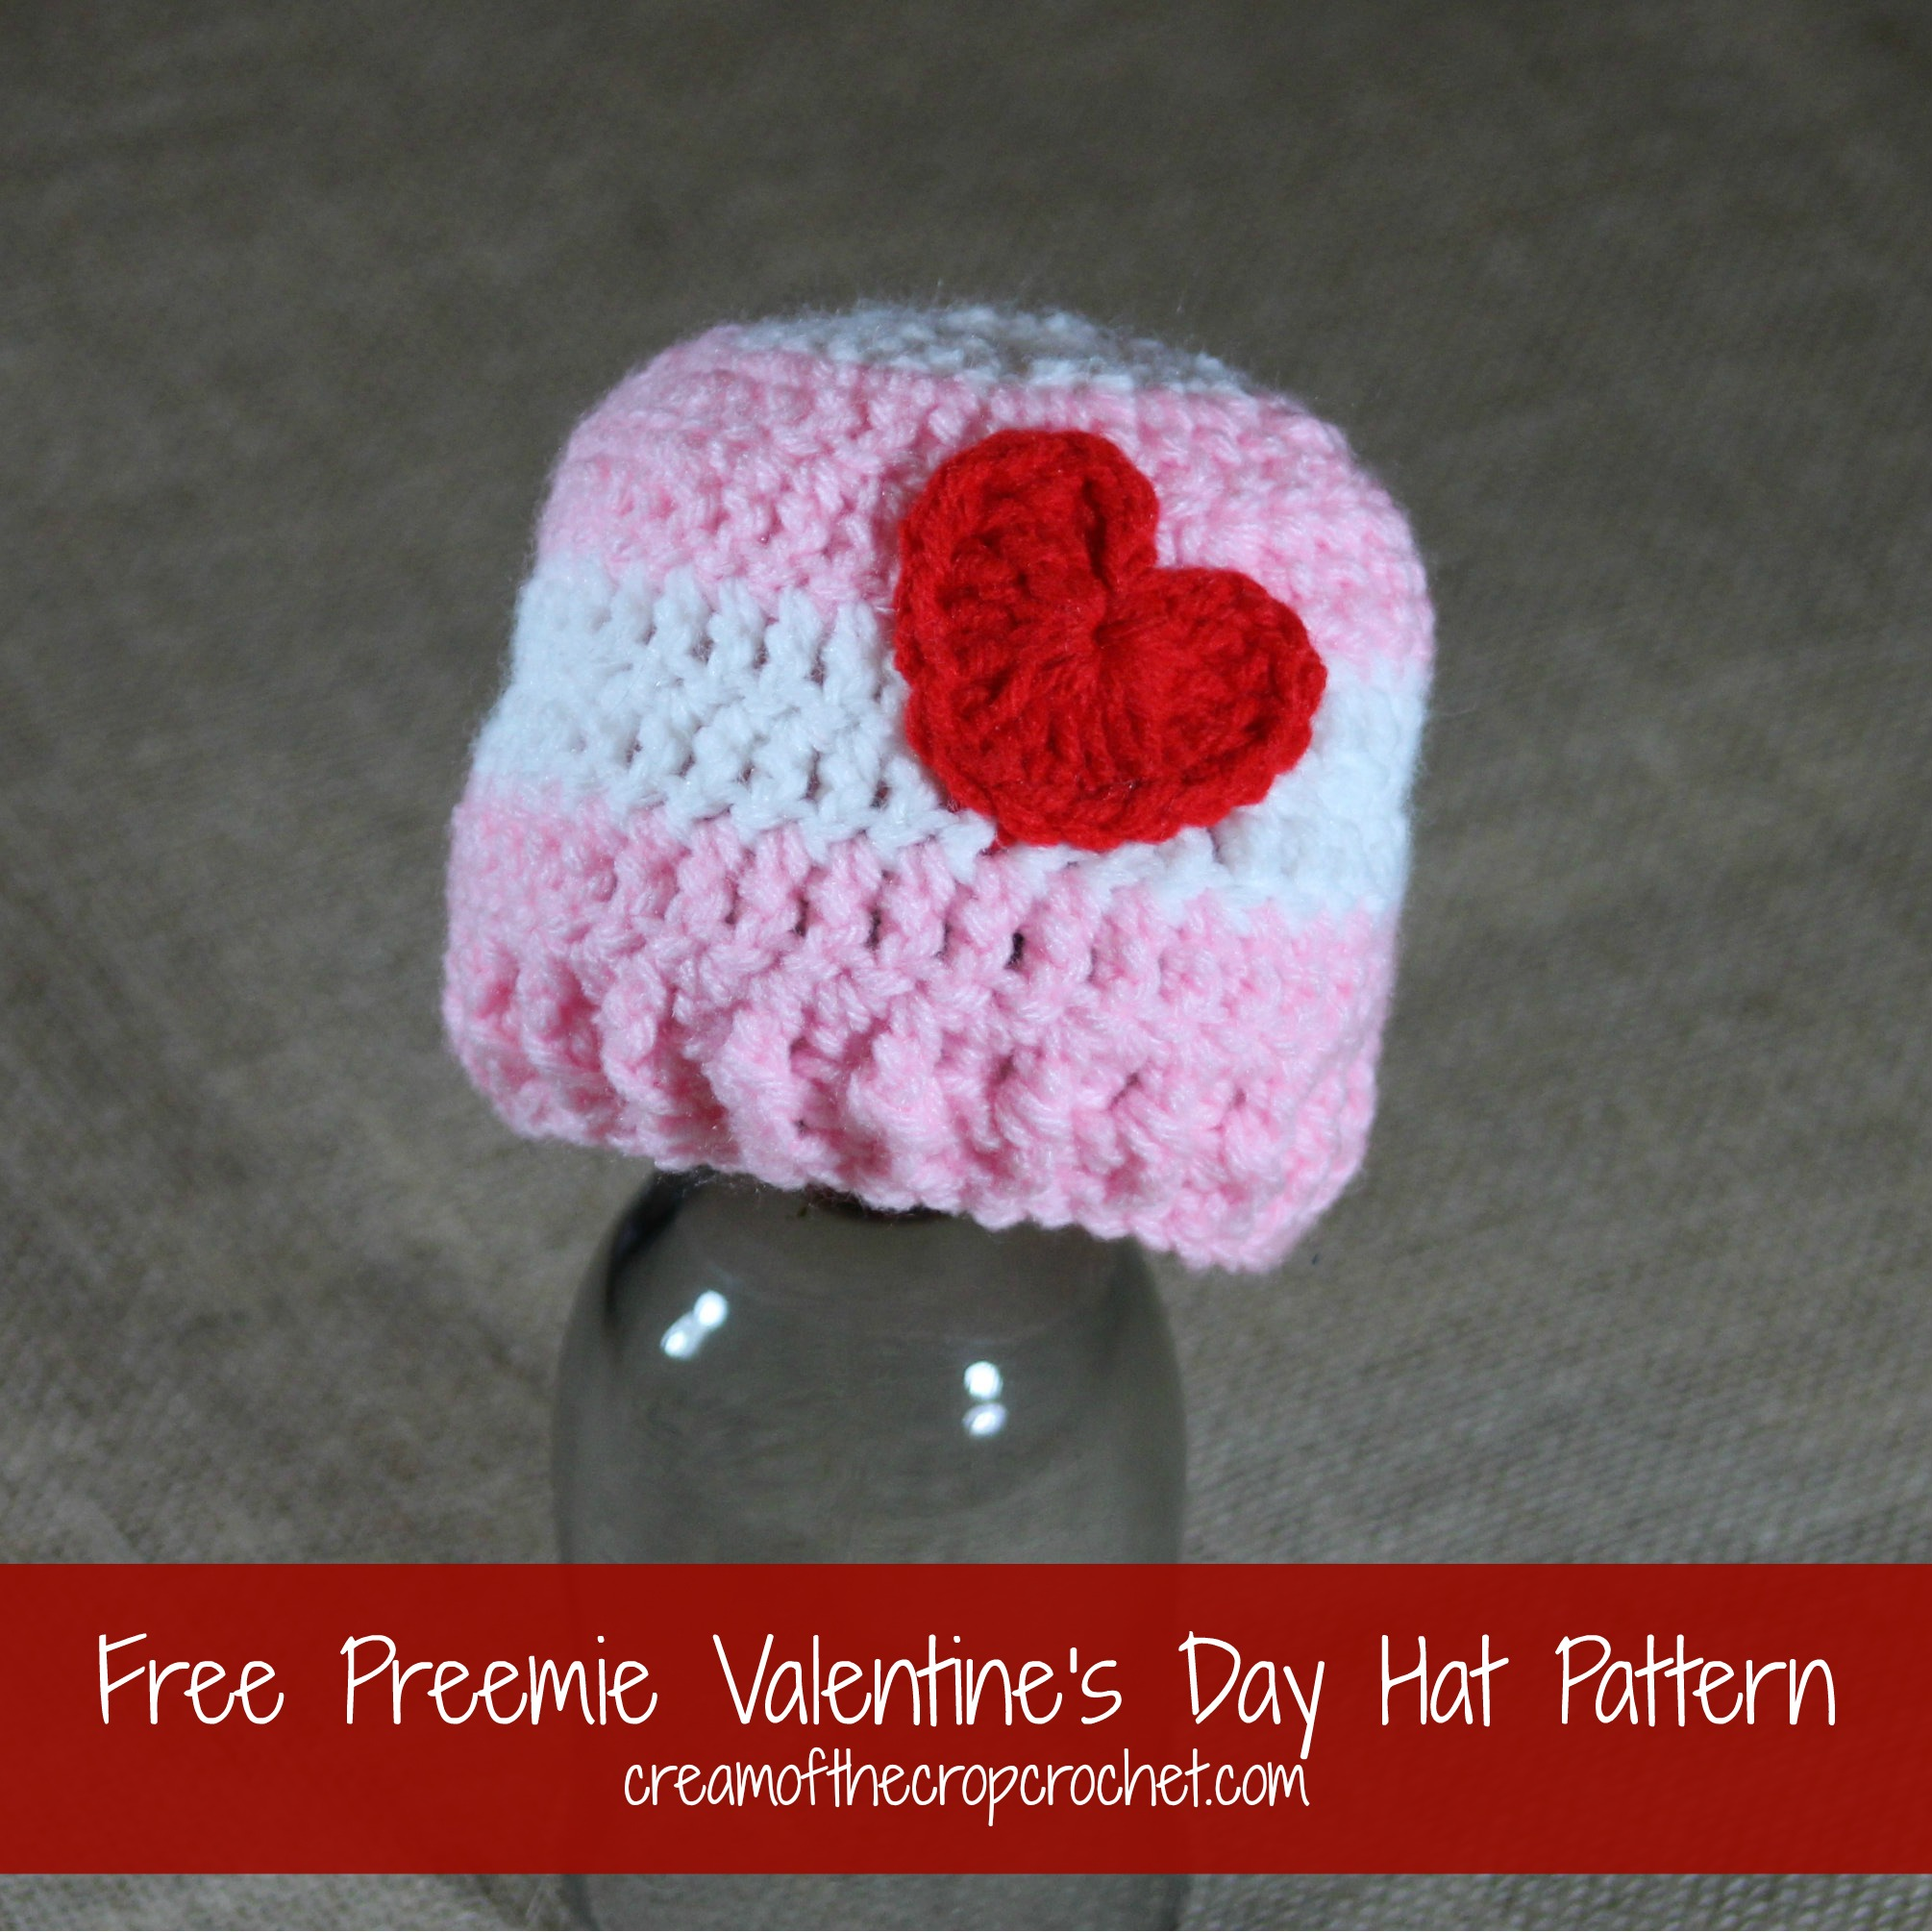 Cream Of The Crop Crochet ~ Preemie Valentine's Day Hat {Free Crochet Pattern}